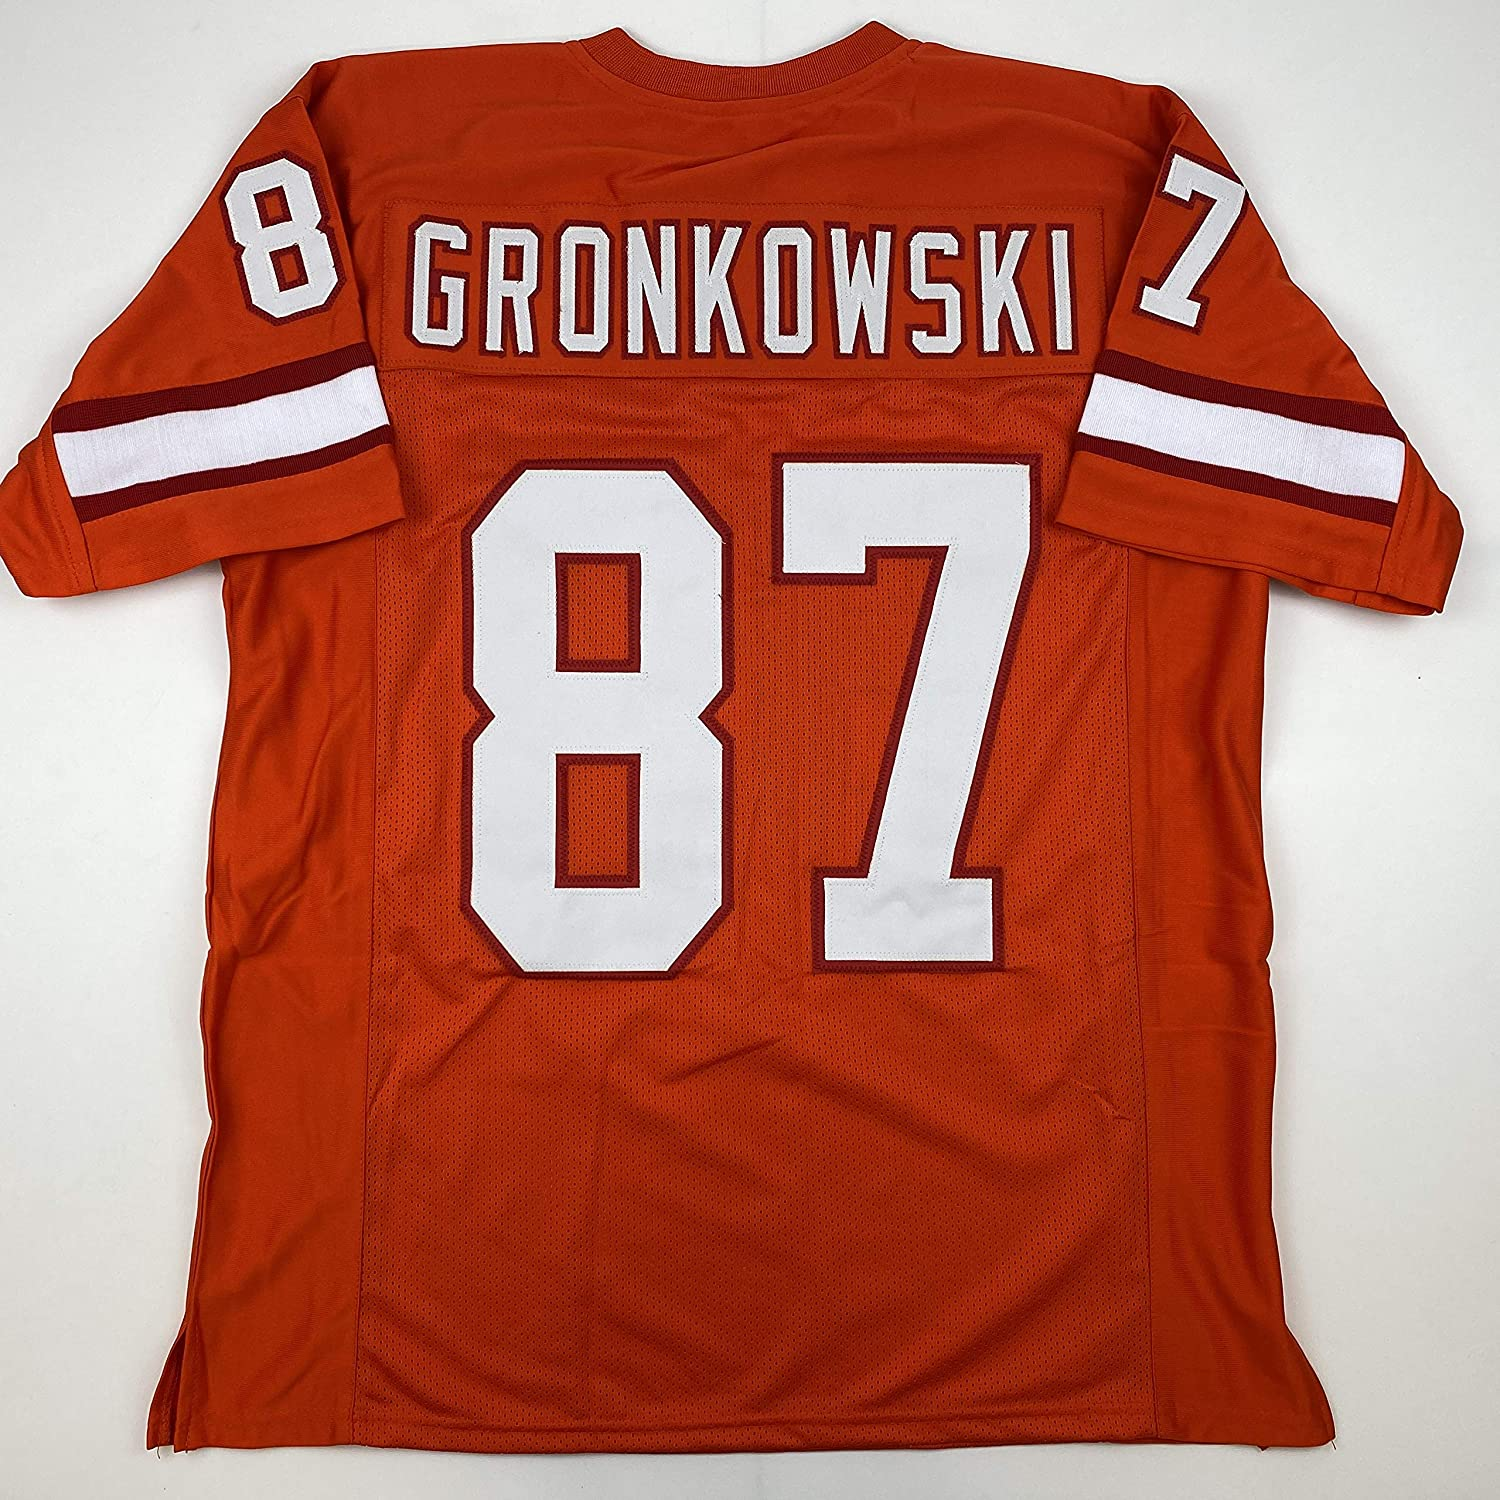 Amazon Com Unsigned Rob Gronkowski Tampa Bay Orange Retro 2020 Custom Stitched Football Jersey Size Men S Xl New No Brands Logos Sports Collectibles